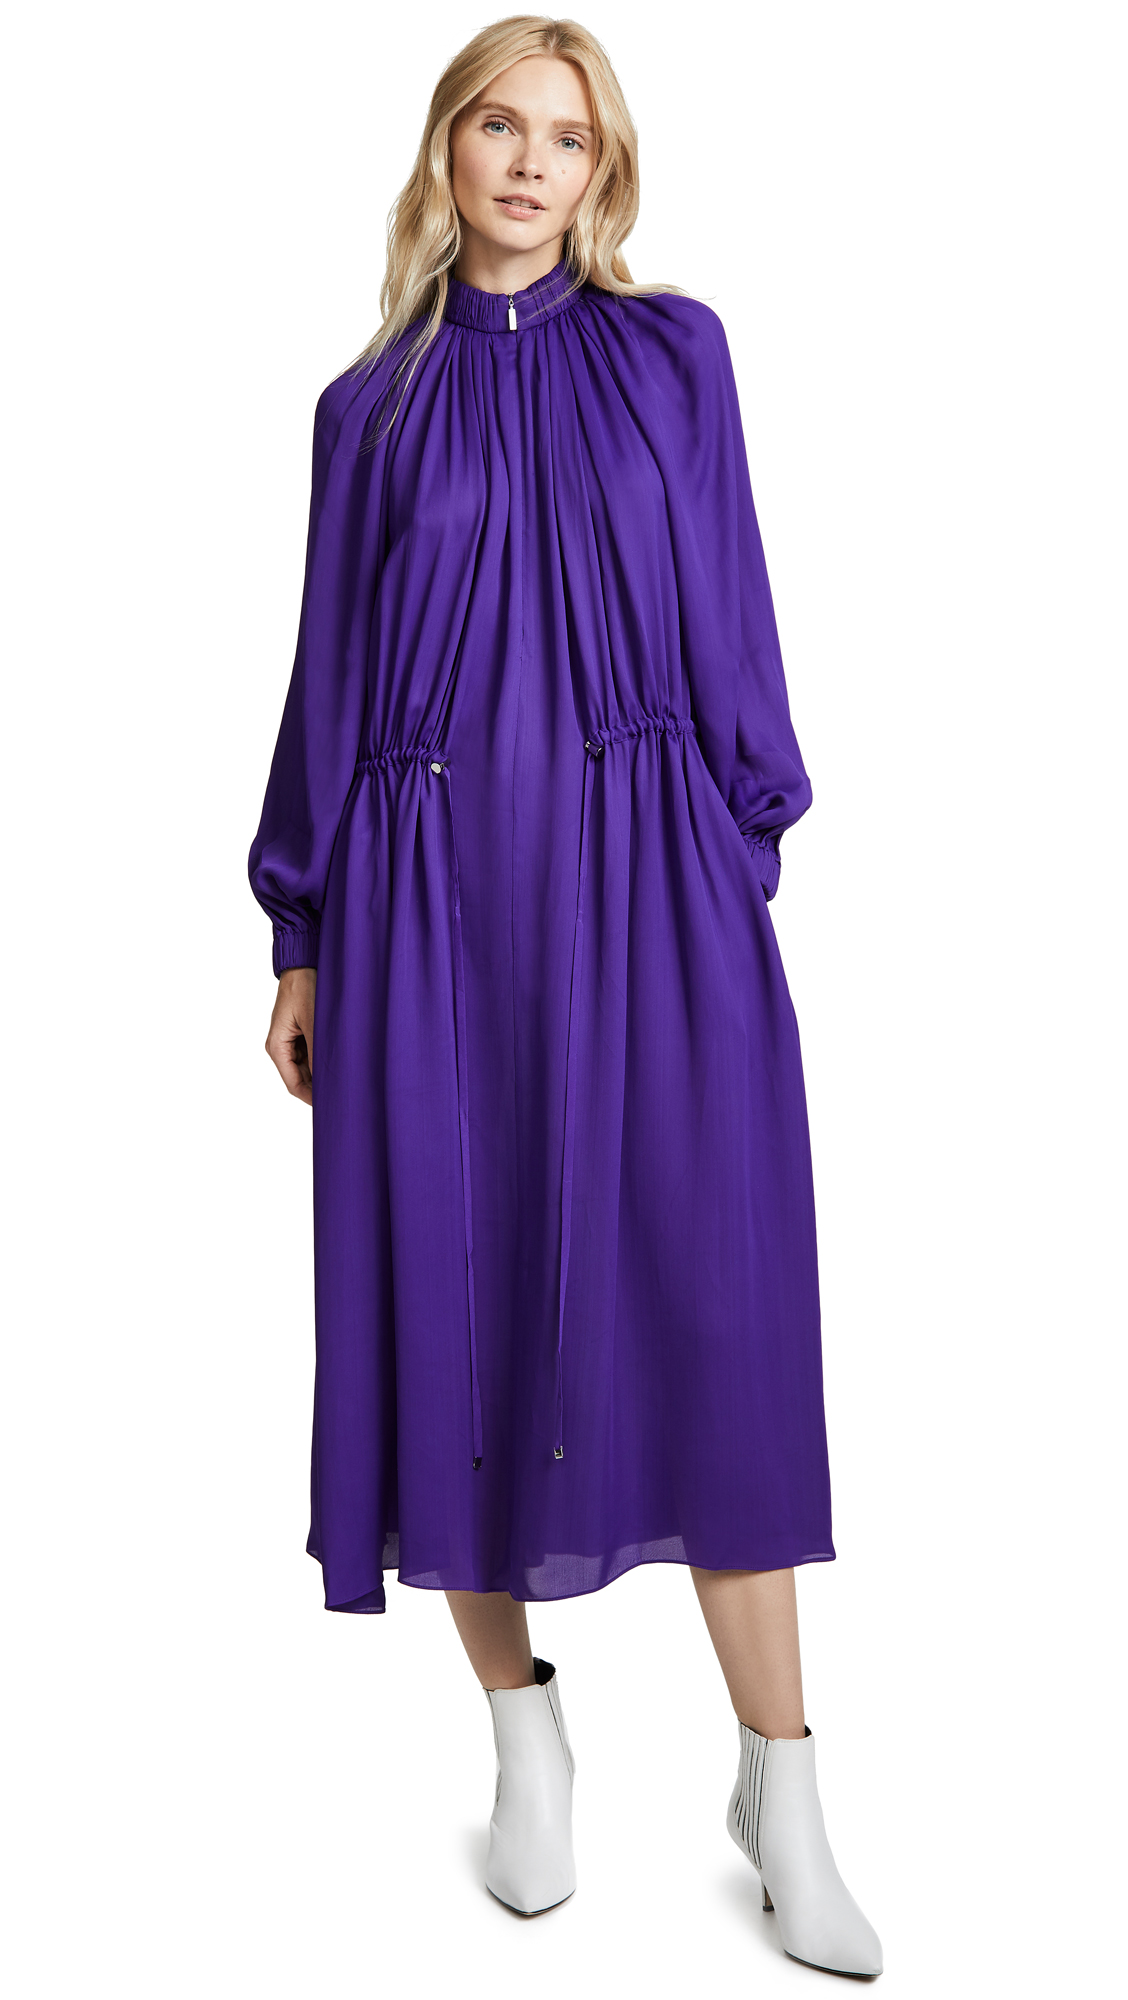 Tibi Drawstring Maxi Dress